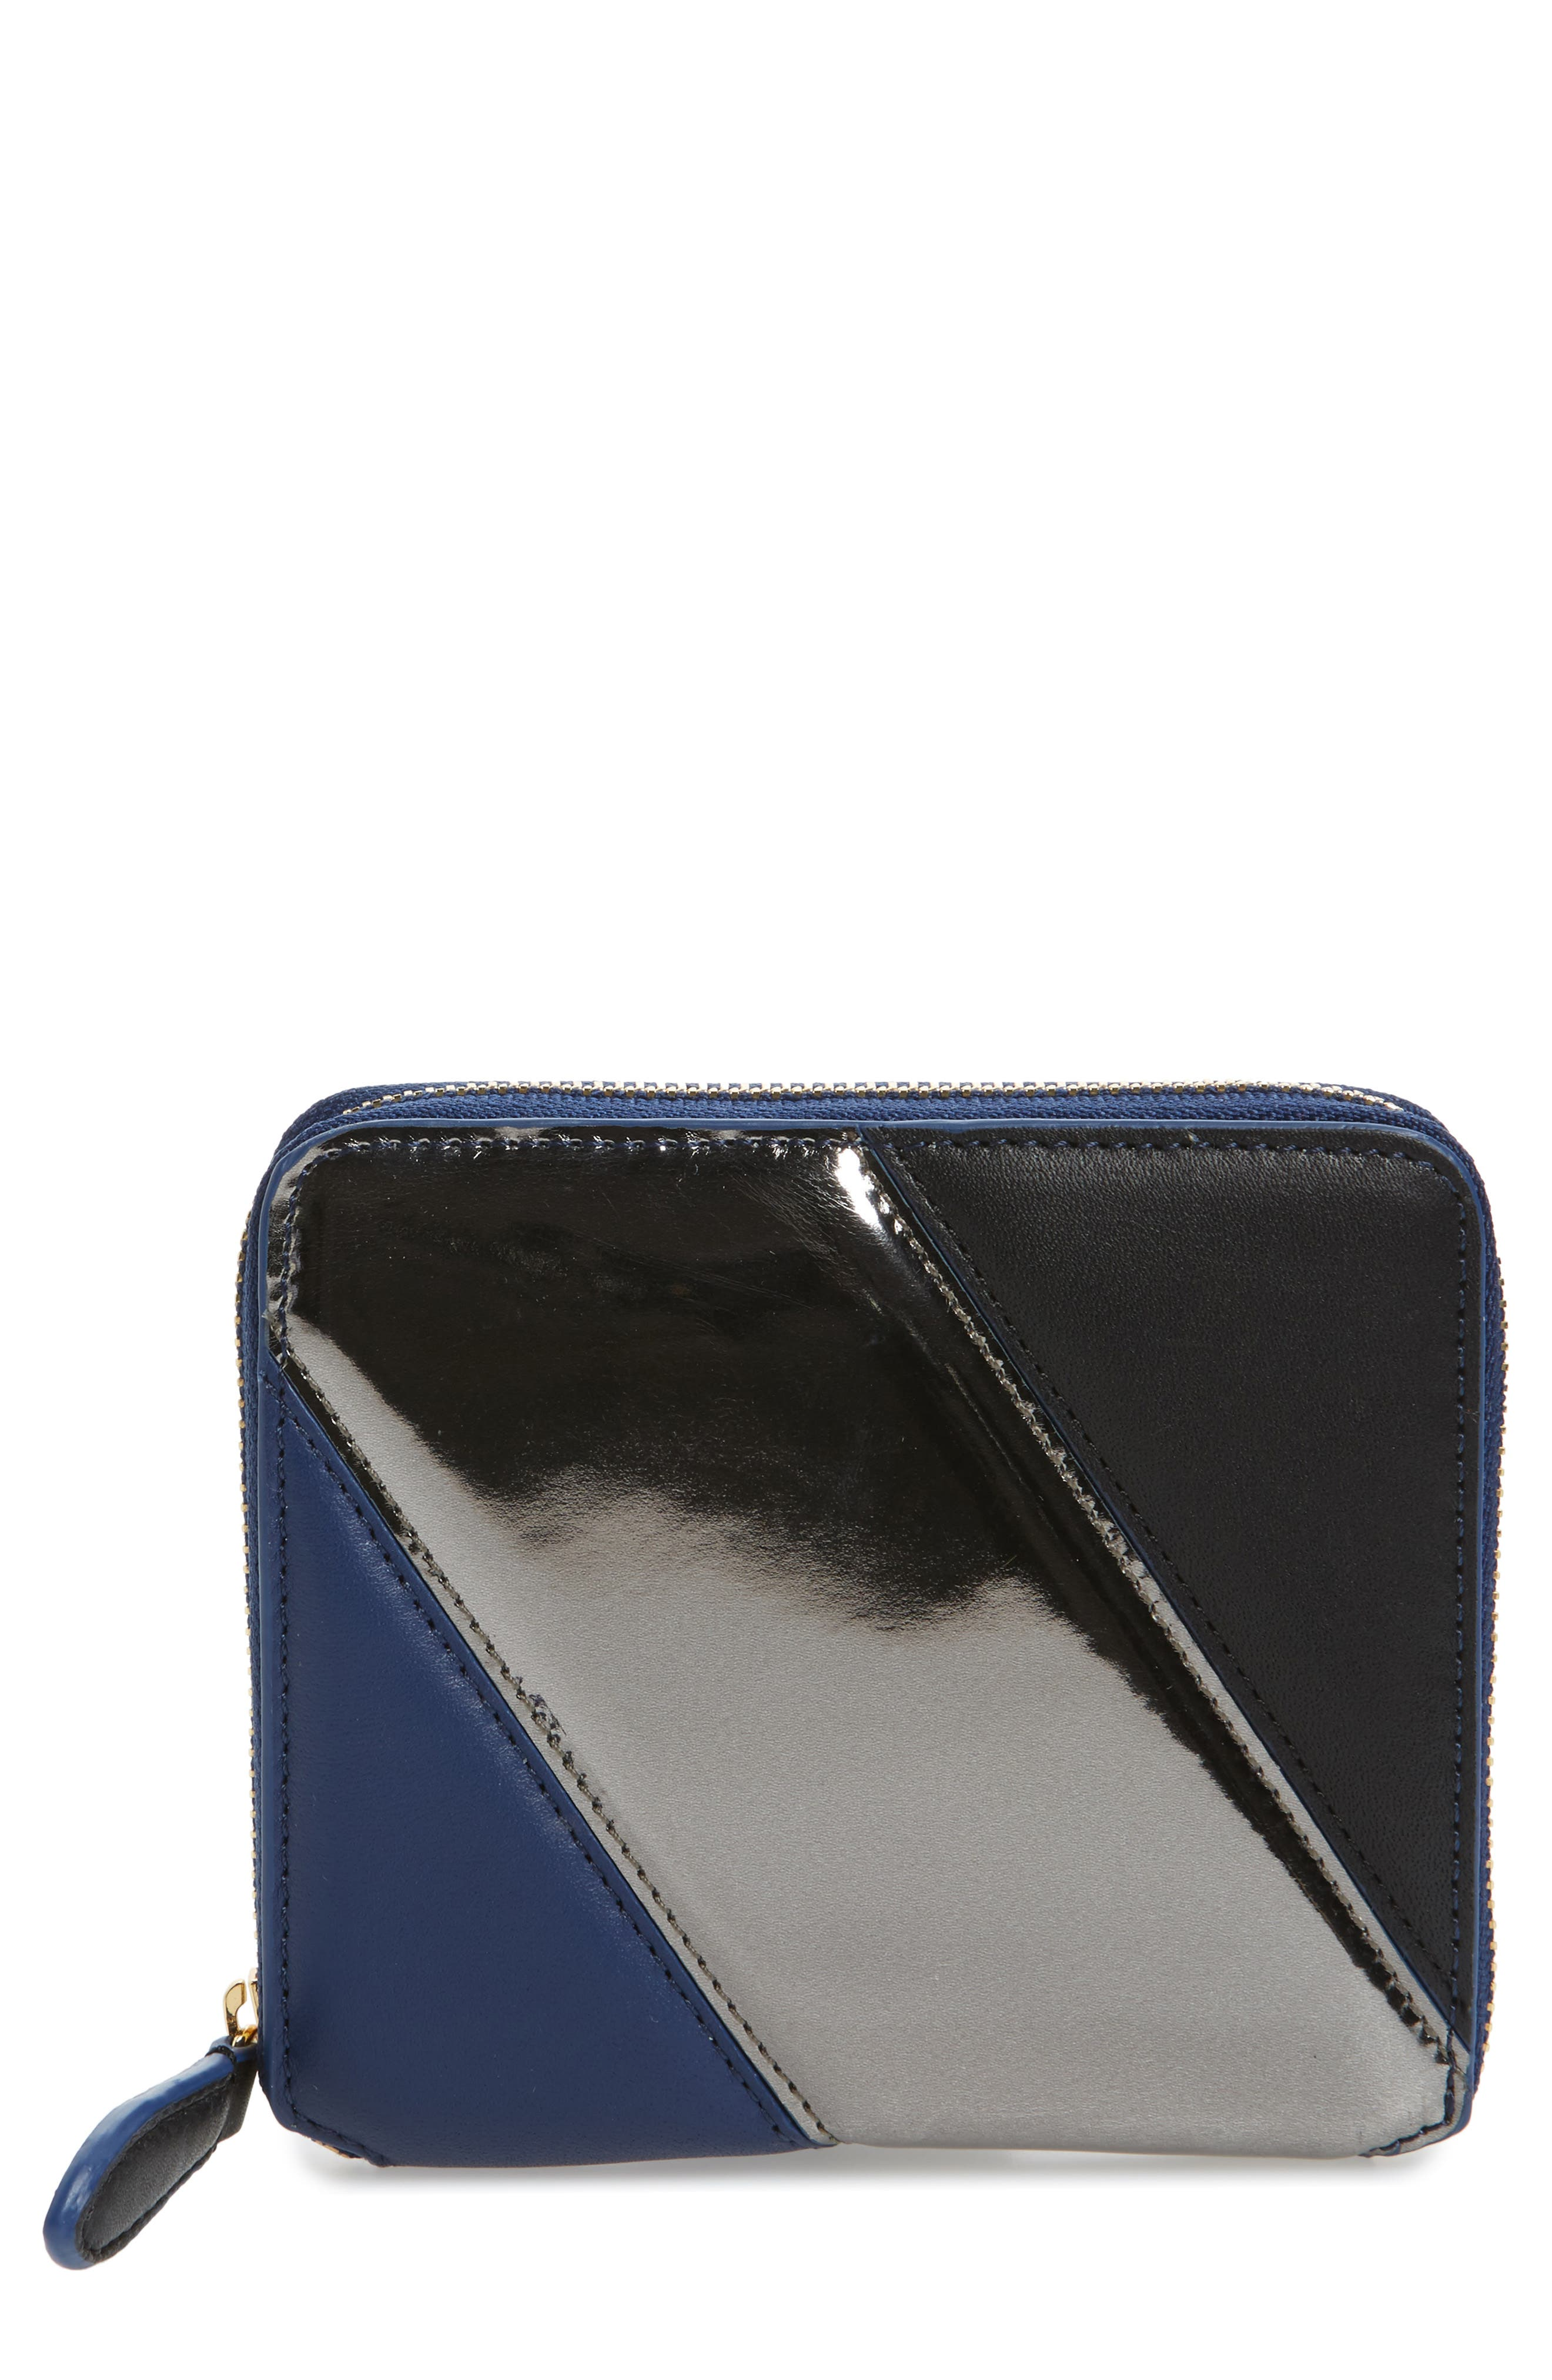 DIANE VON FURSTENBERG Small Za Leather Wallet